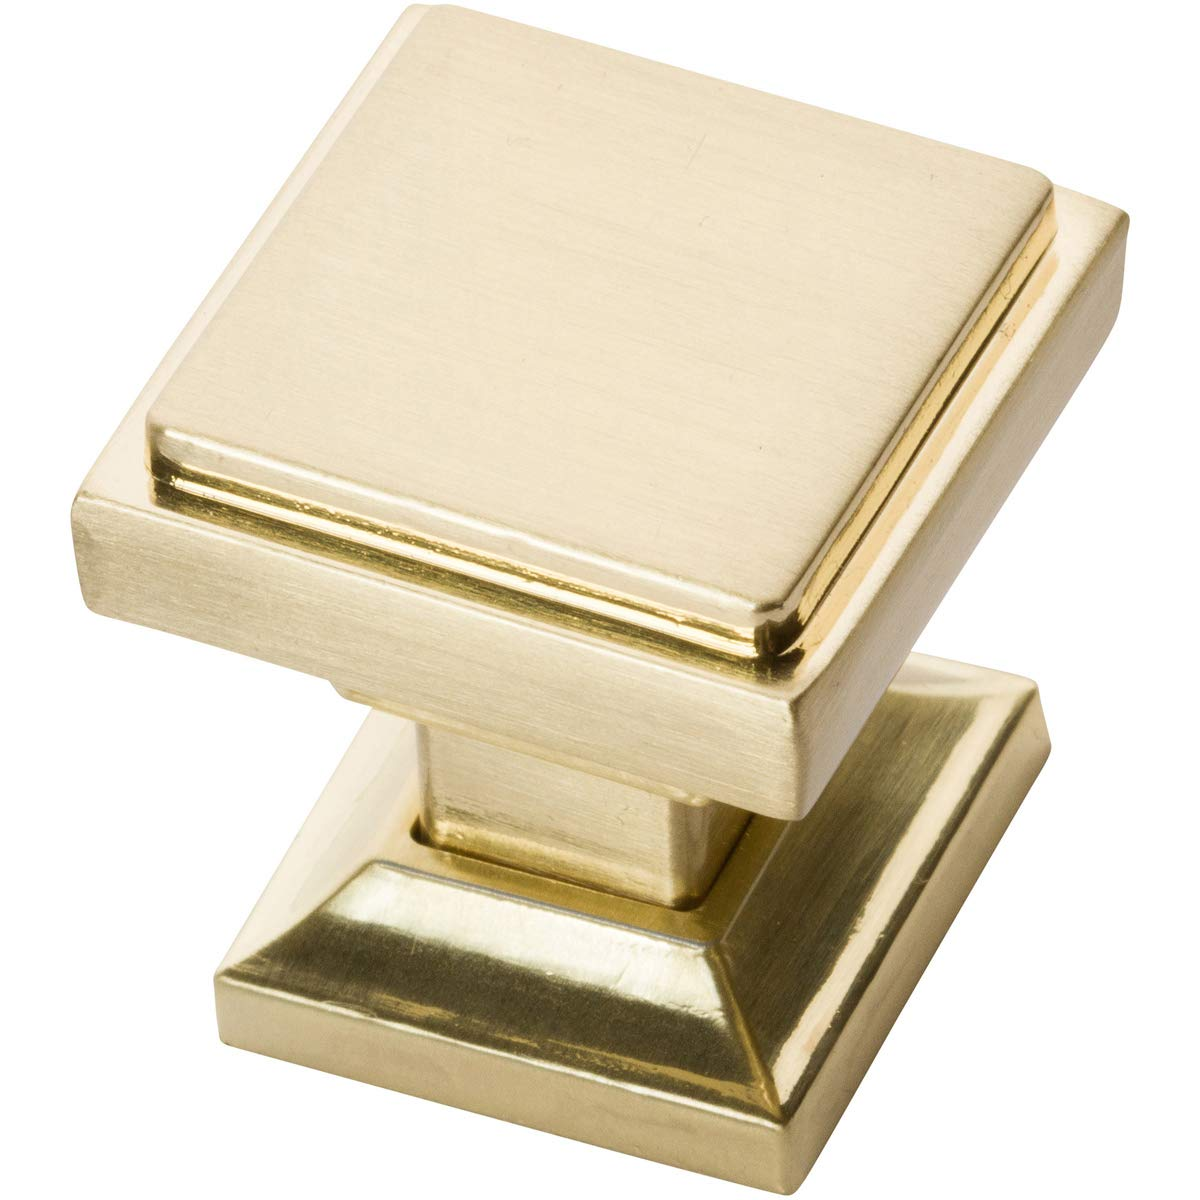 Southern Hills Satin Brass Square Cabinet Knobs - Pack of 5 -Brushed Brass Kitchen Pulls - Brushed Brass Cabinet Hardware - Cupboard Drawer Knobs SHKM002-BRS-5